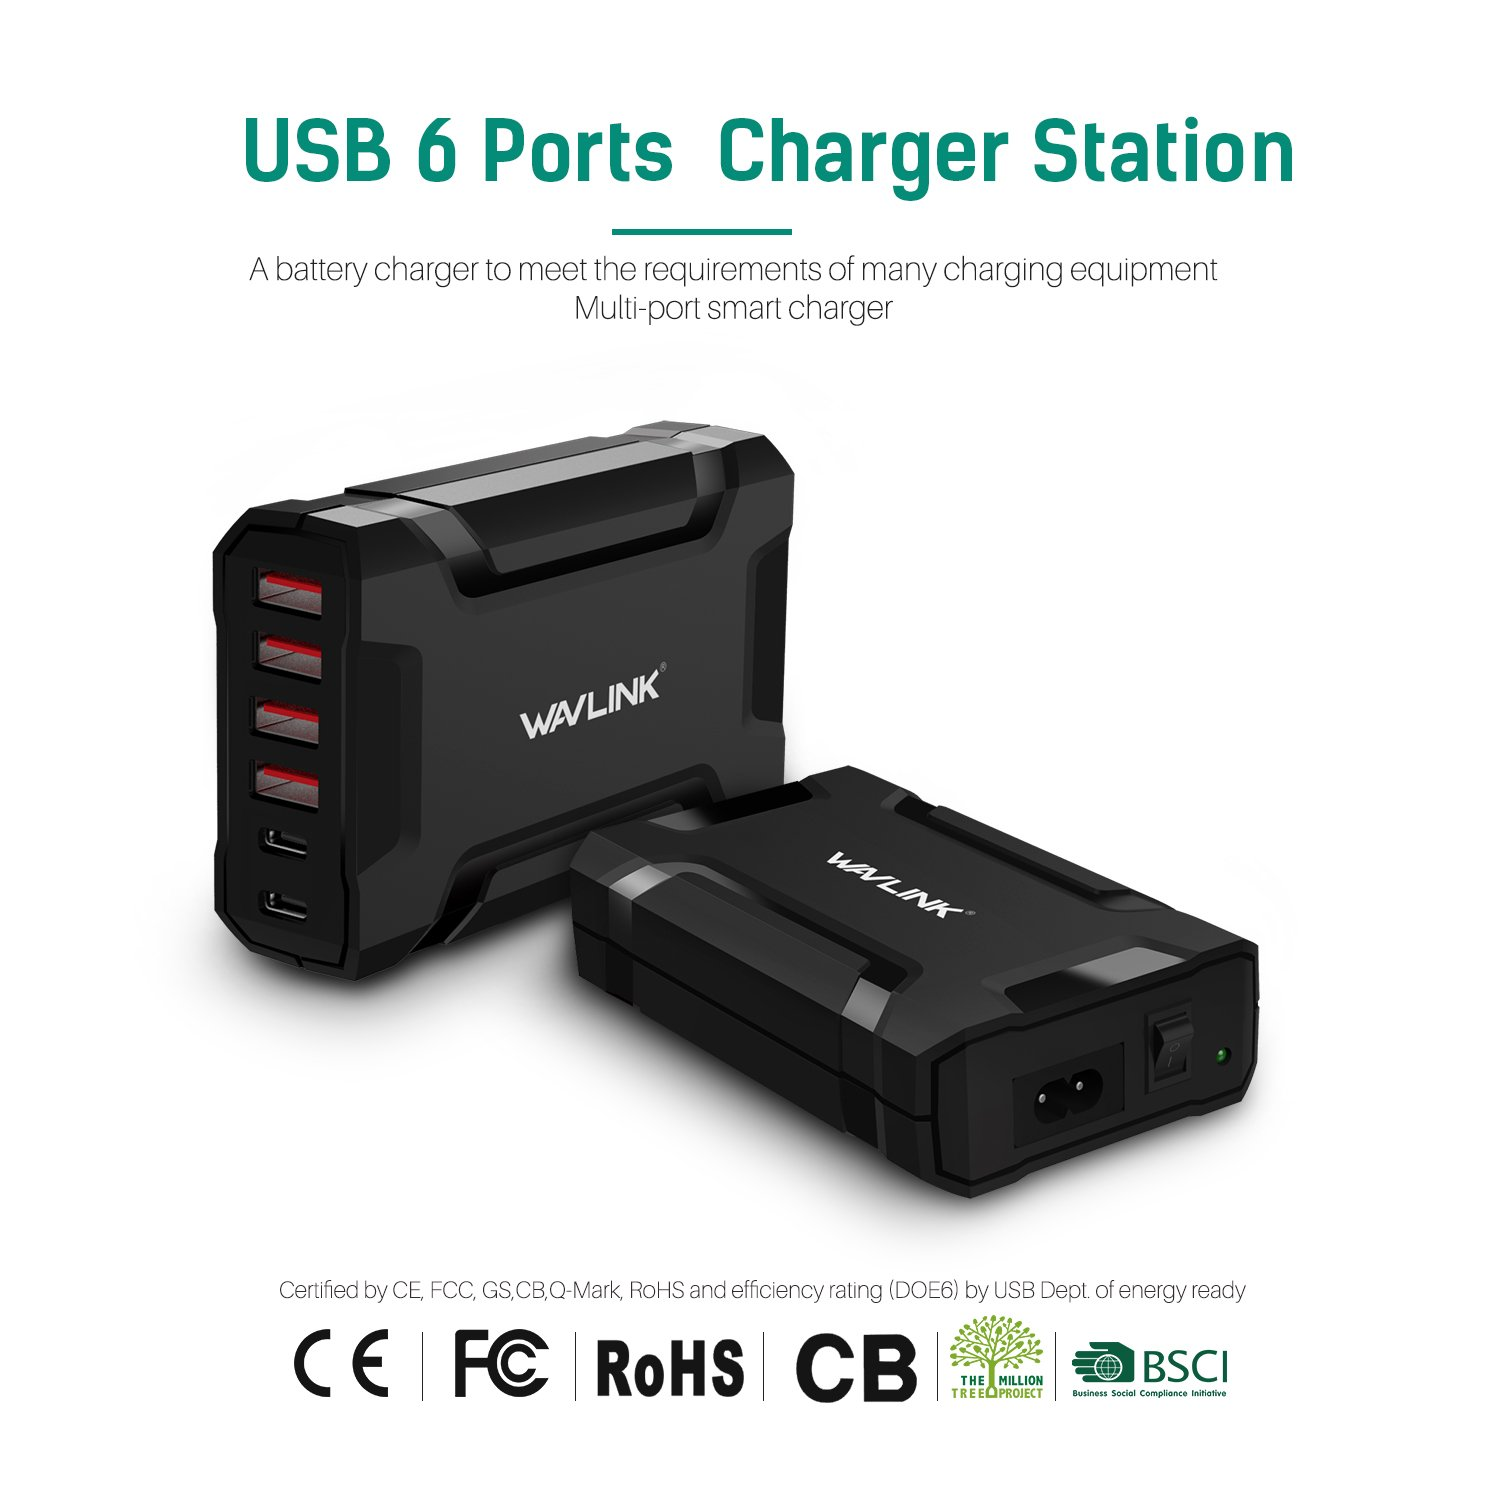 Amazon.com 60W 6 Port USB C Wall Charger - USB 3.0 Multiple Fast Charge Desktop Charging Station Dock with Charging Cords for iPhones/Smart Phones/Tablets ...  sc 1 st  Amazon.com & Amazon.com: 60W 6 Port USB C Wall Charger - USB 3.0 Multiple Fast ...